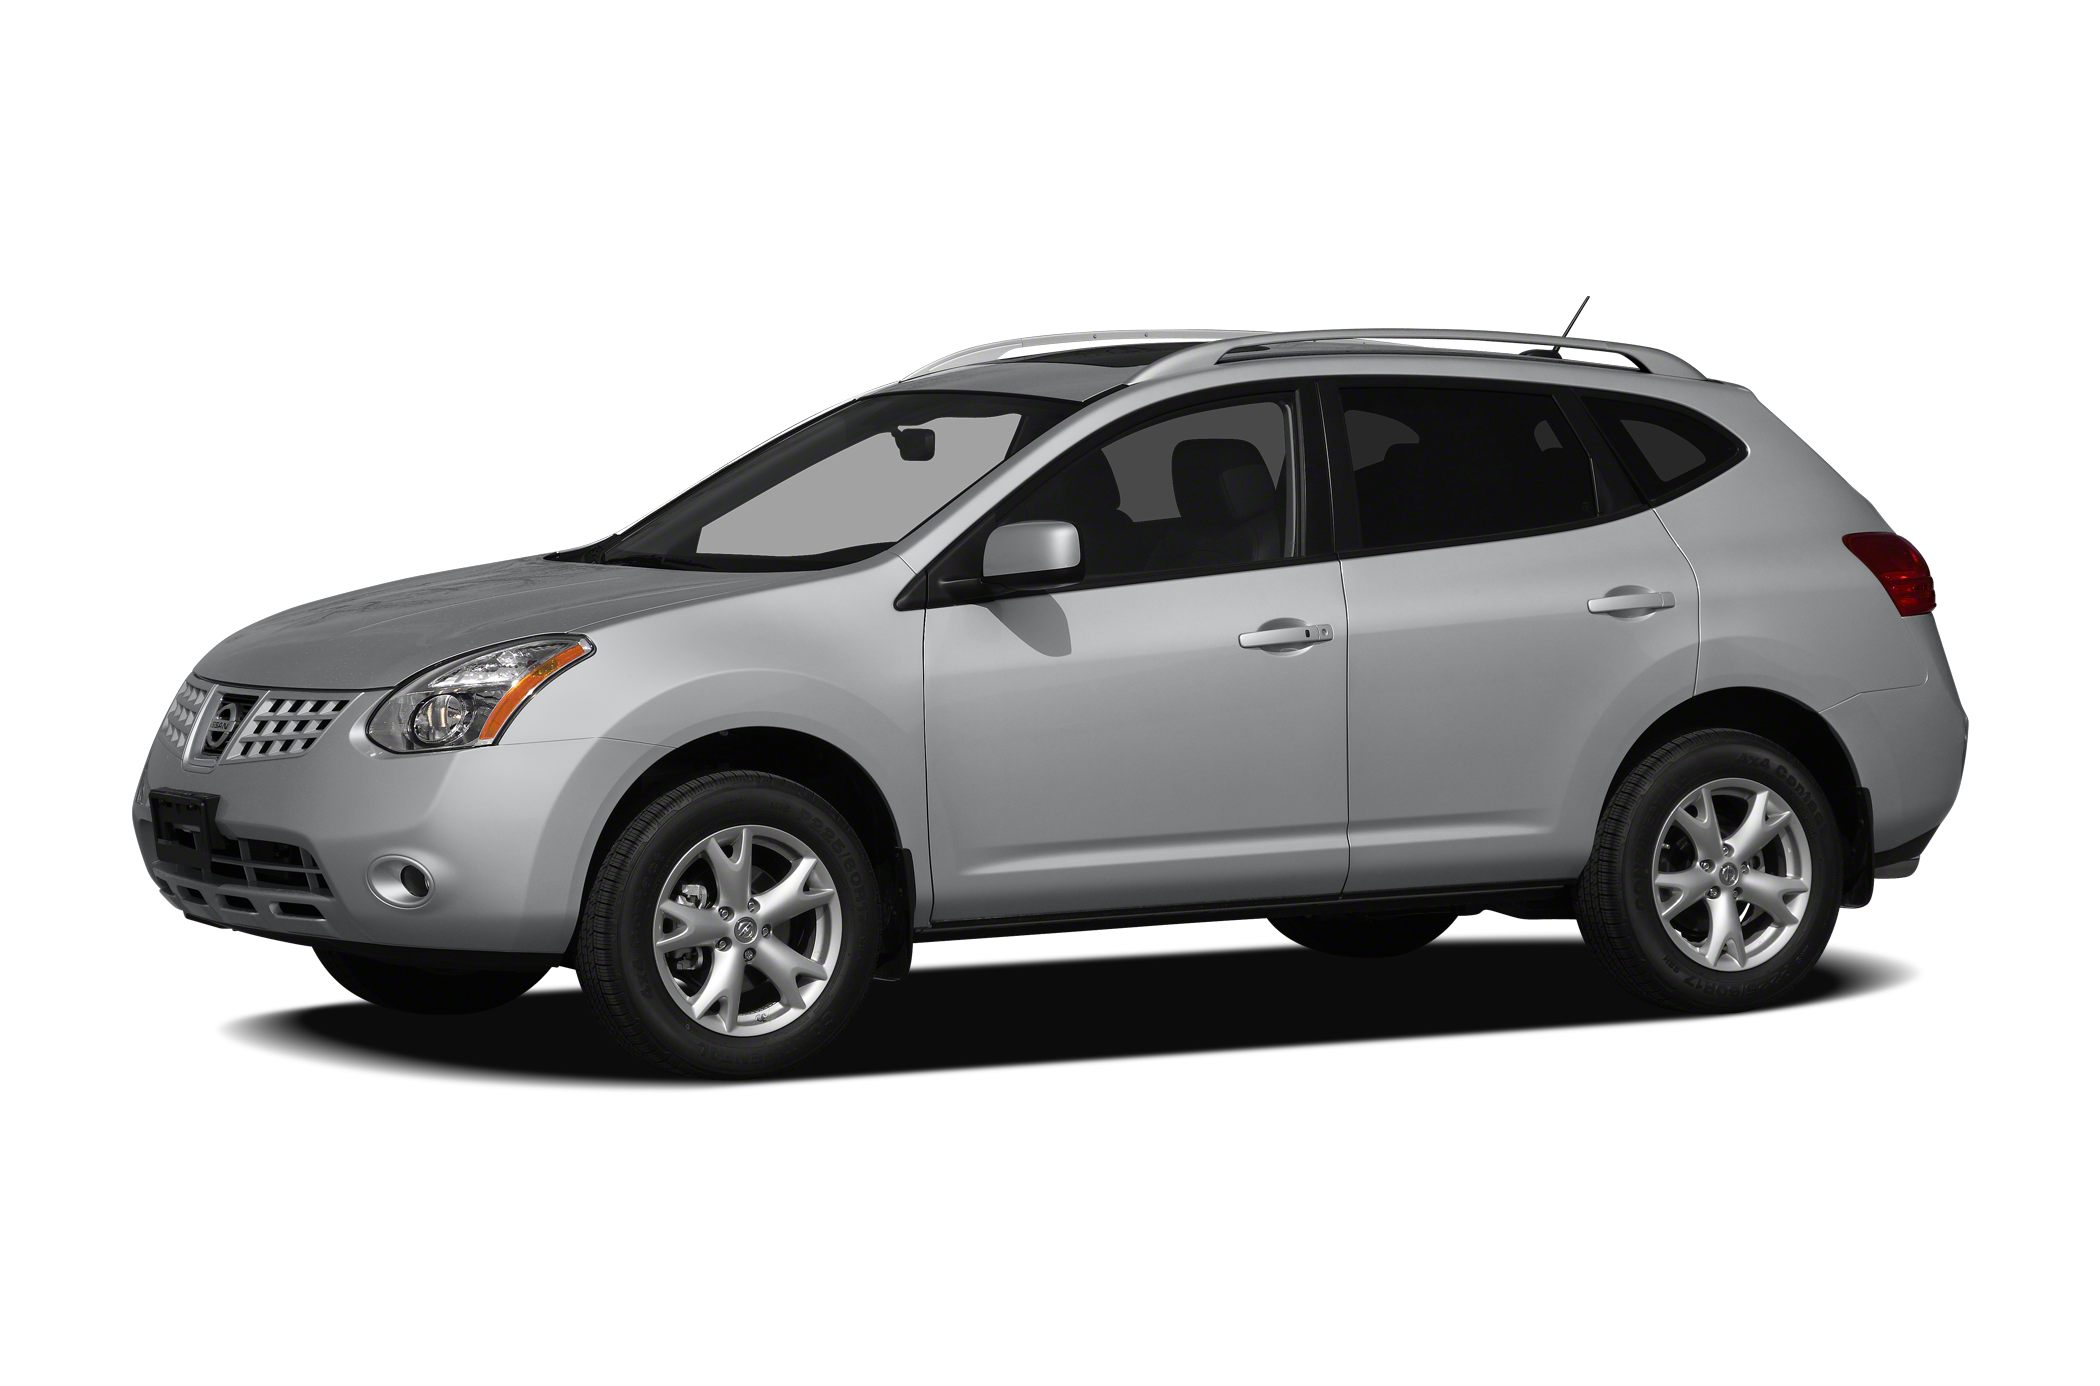 2009 Nissan Rogue S SUV for sale in Manteca for $11,989 with 102,811 miles